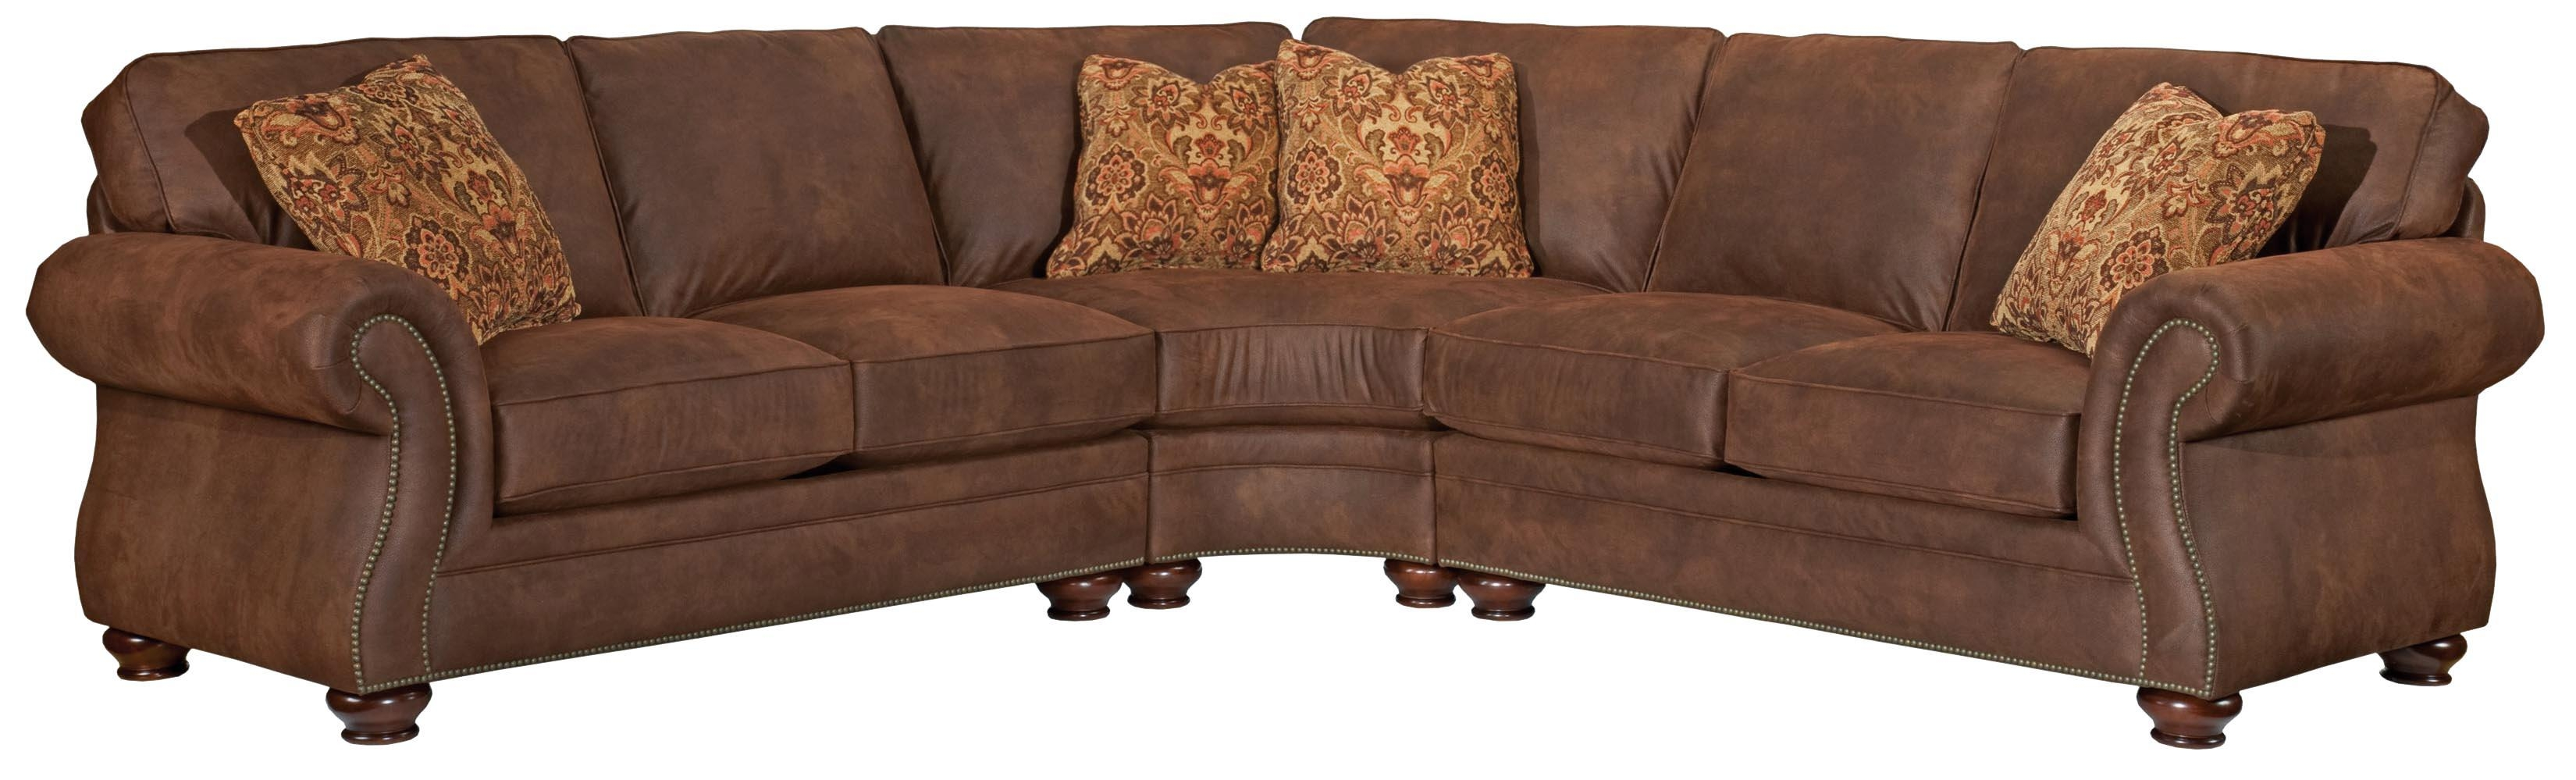 Featured Image of Broyhill Sectional Sofas